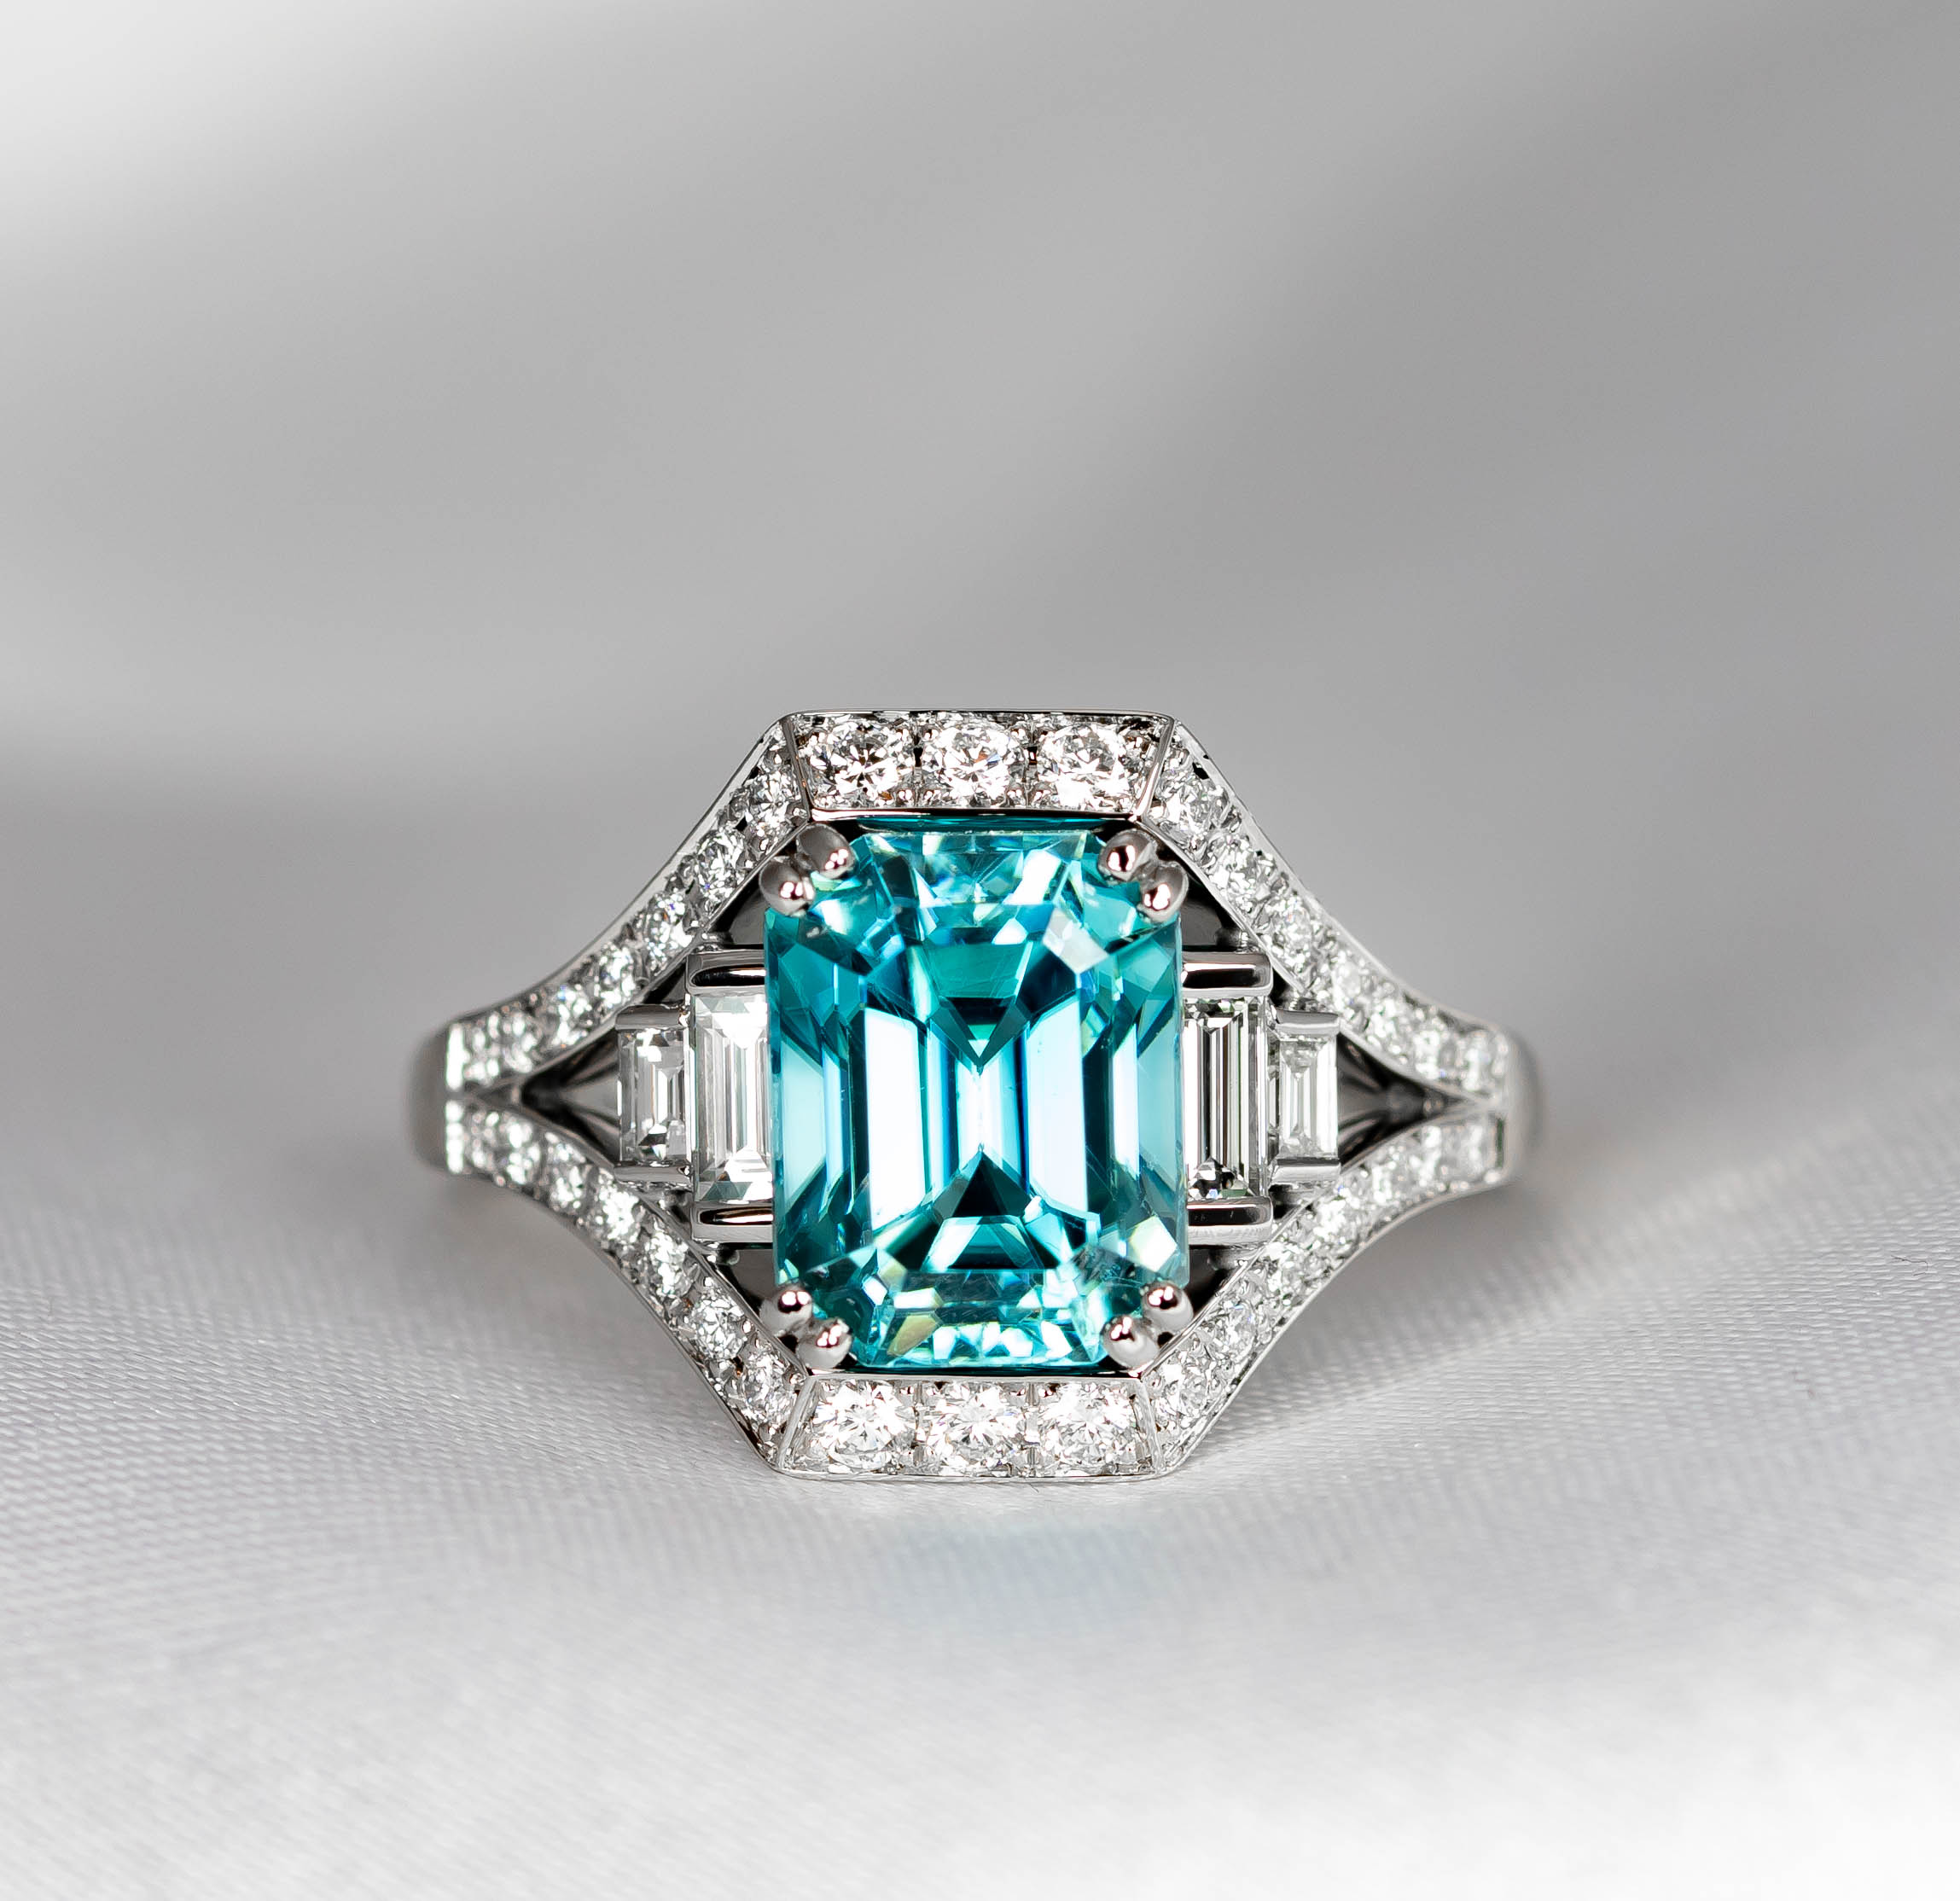 Bespoke Zircon and diamond platinum ring made with customers 5.02ct blue zircon. Made in Chichester, England.